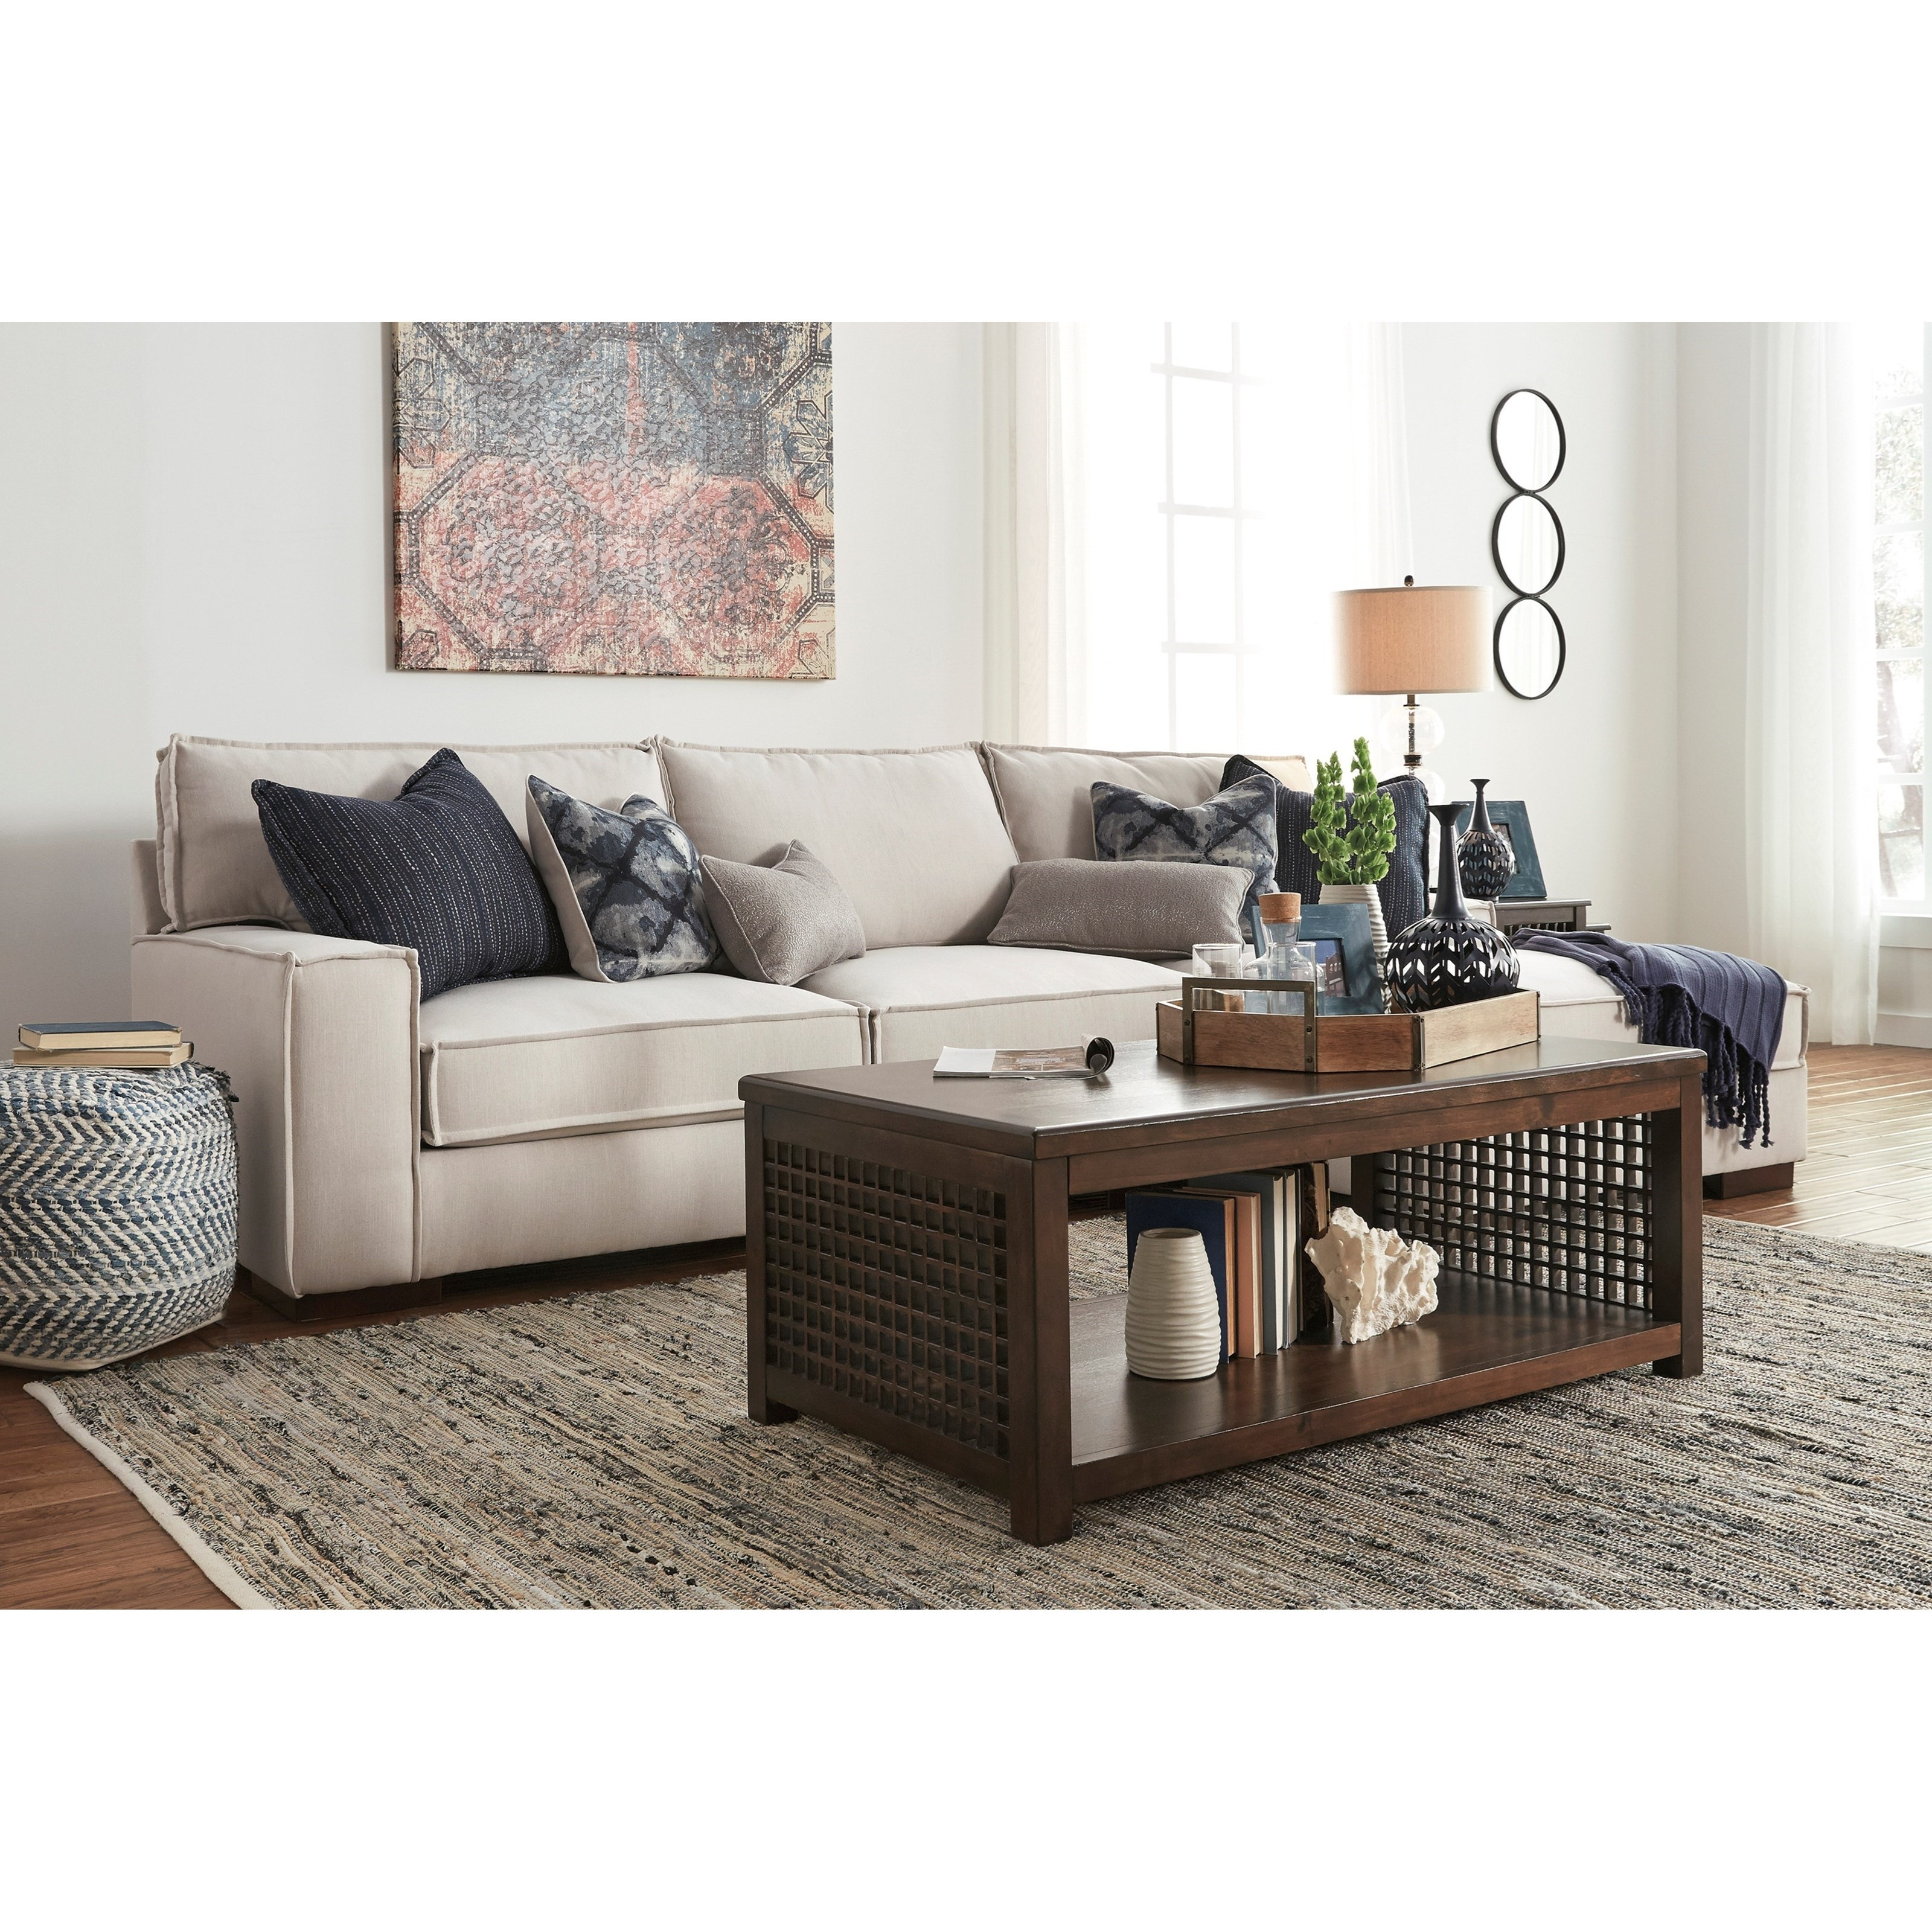 Raf Chaise Laf Sofa | Baci Living Room Inside Mcdade Graphite 2 Piece Sectionals With Raf Chaise (View 10 of 25)